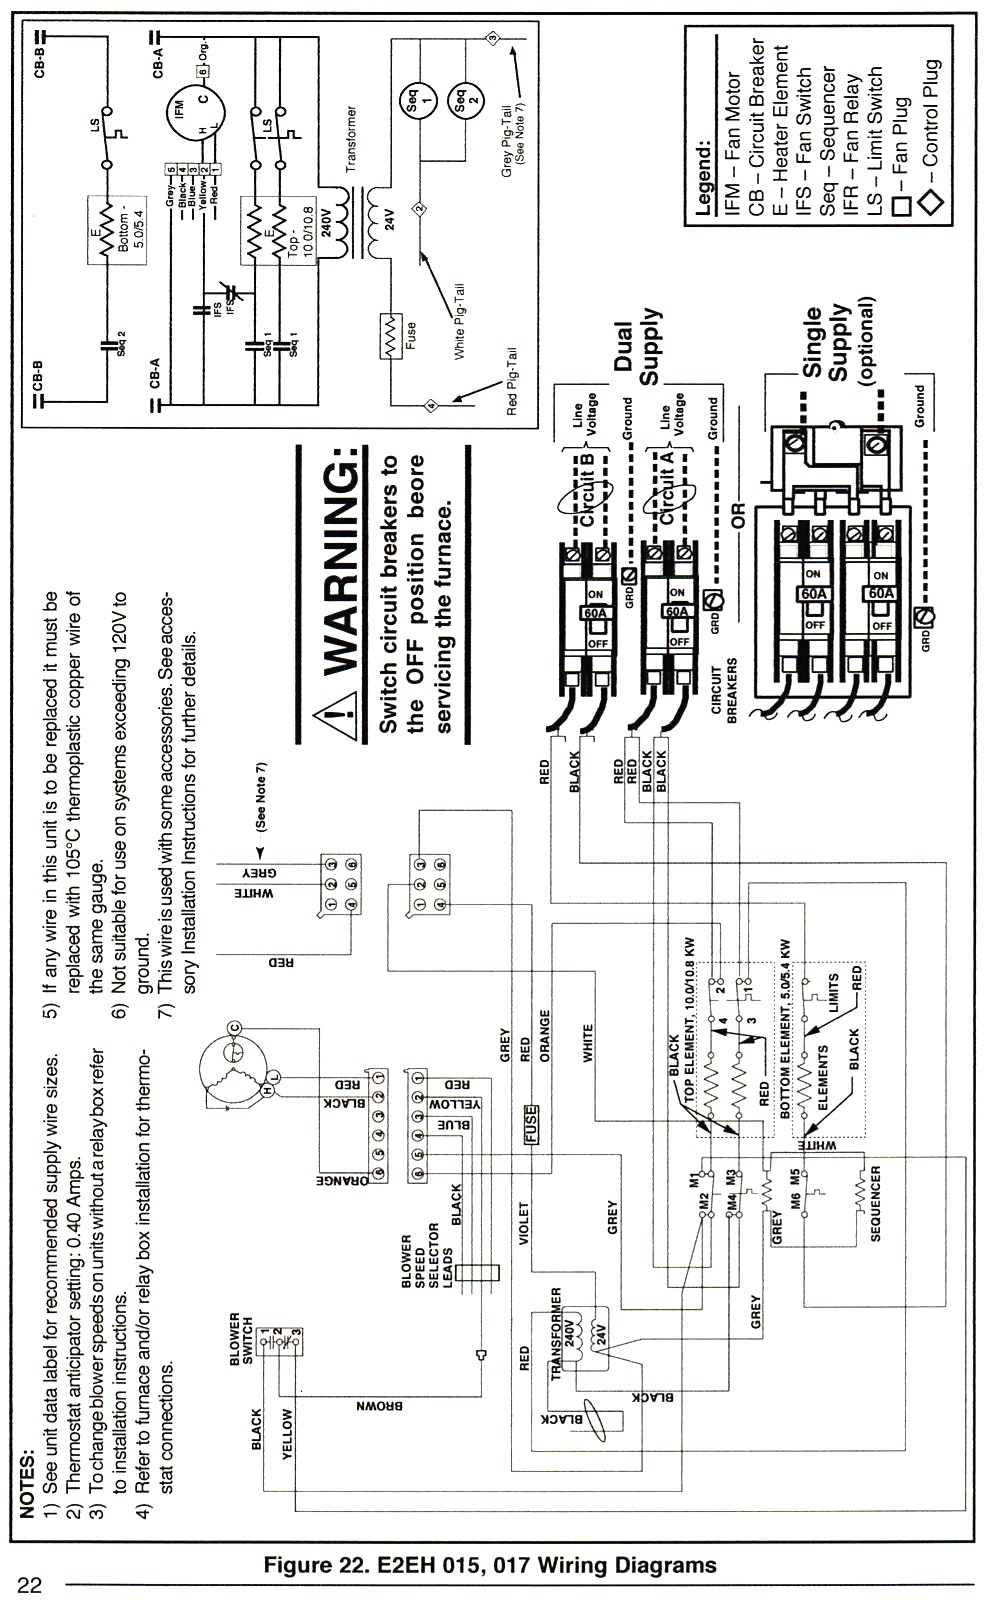 hight resolution of nordyne furnace wiring diagram free wiring diagramnordyne furnace wiring diagram intertherm electric furnace wiring diagram for